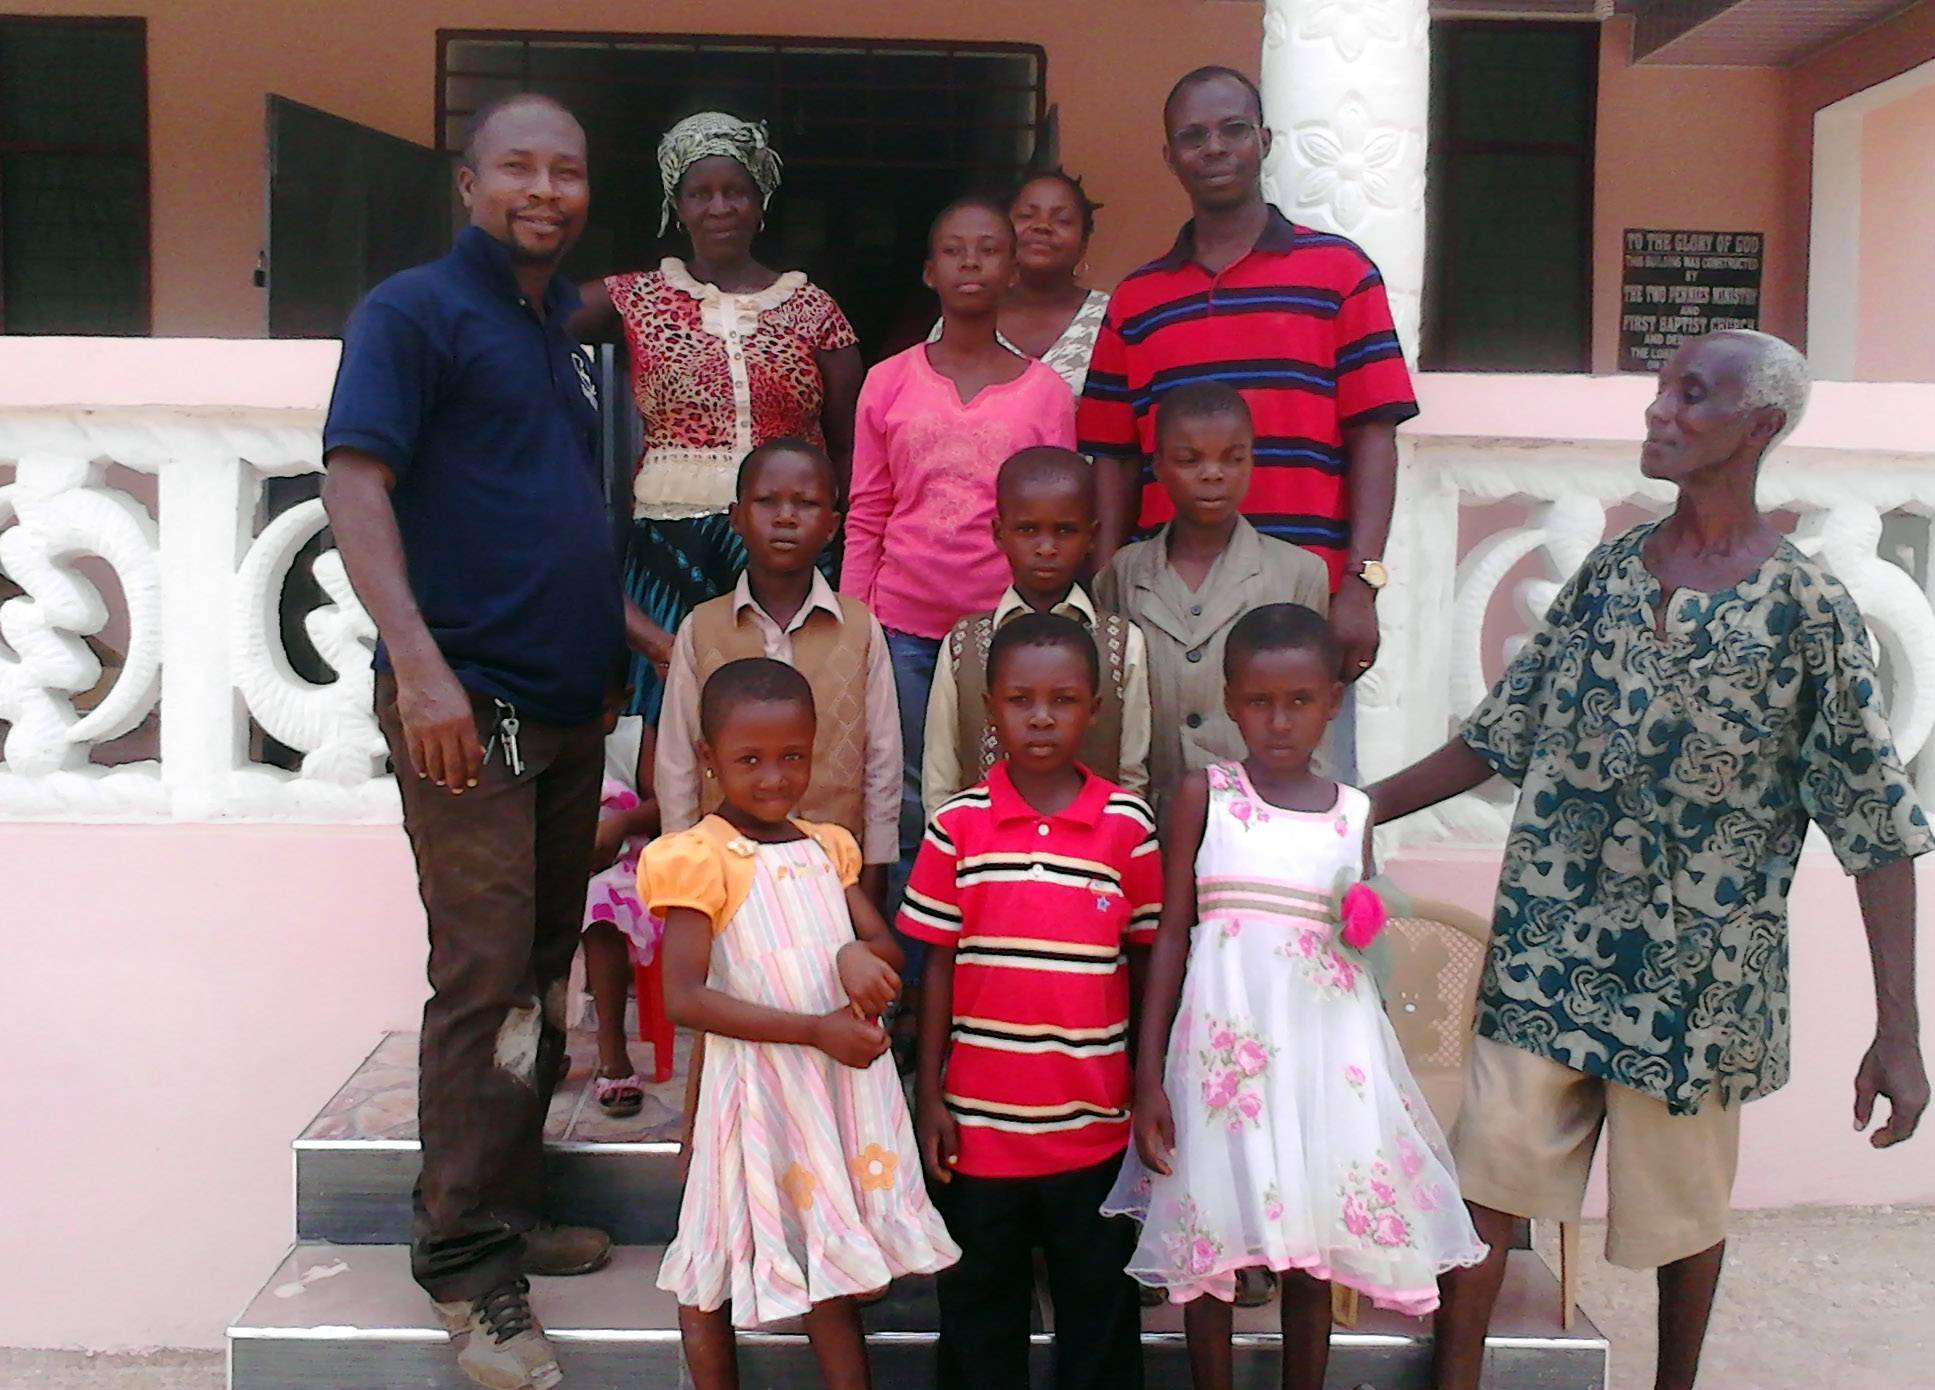 Aboagye Kwesi Prah, left, the Two Pennies Ghanaian representative, is pictured with some of the children at the newly built orphanage in Ghana. On the upper right is Ebenezer, the founder of the home.